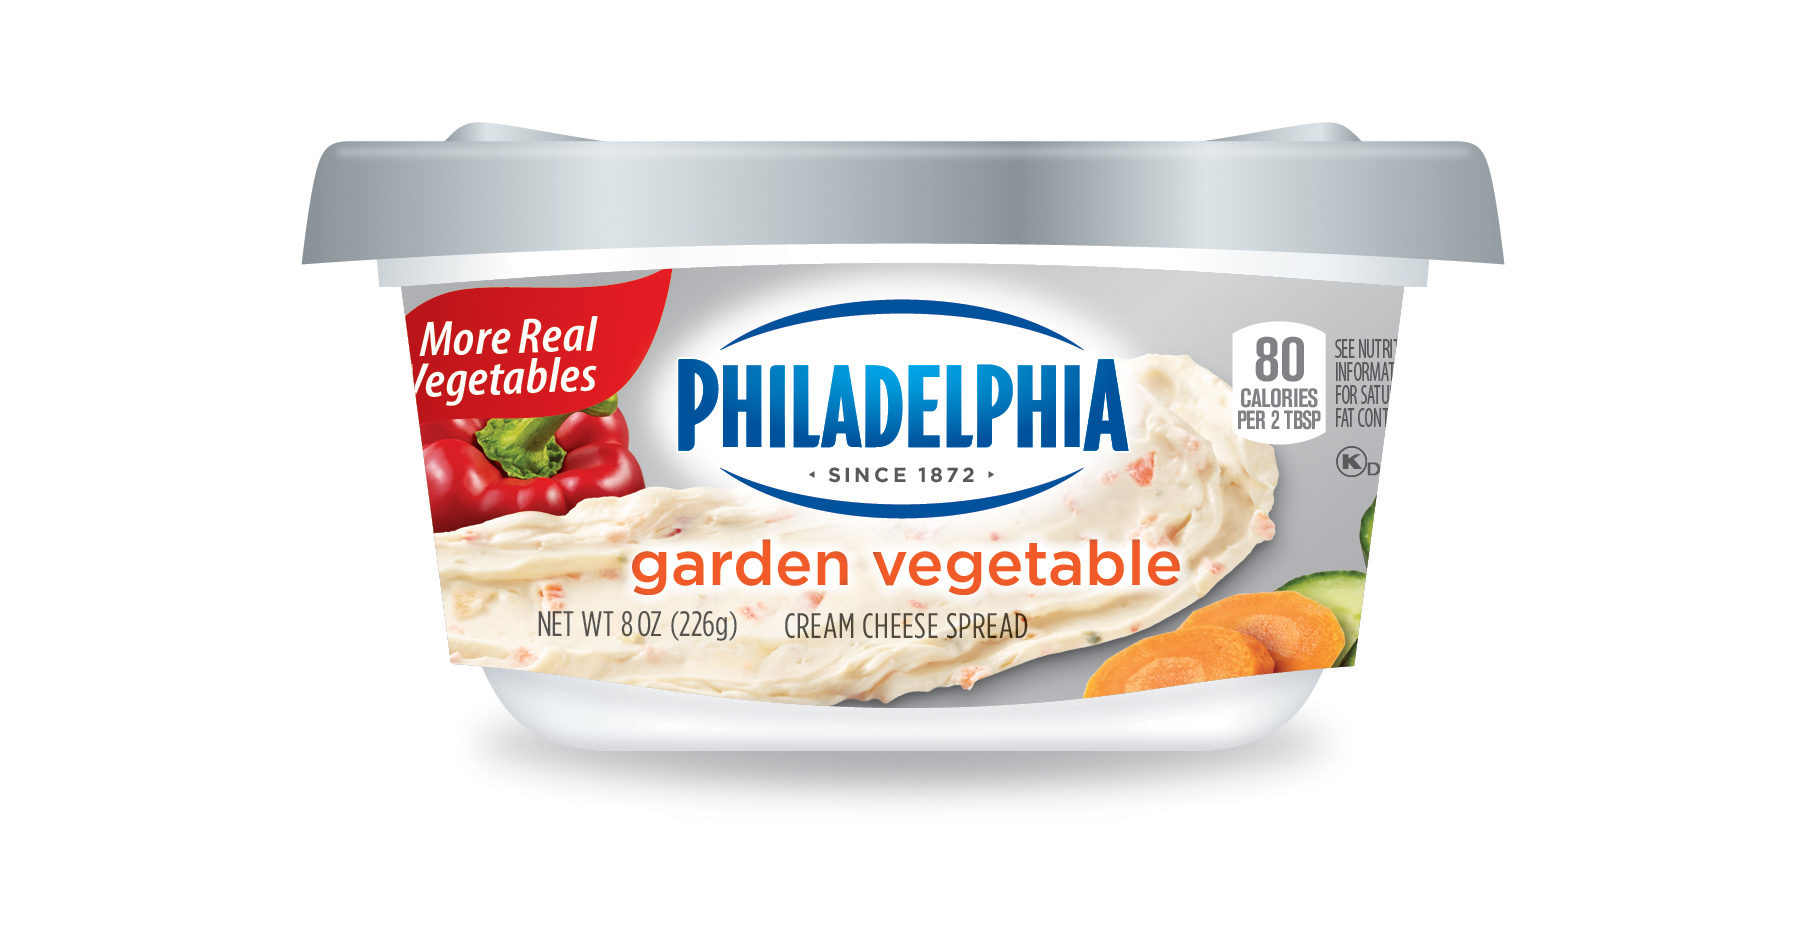 Philadelphia Cream Cheese Spreads Load Up On Fruits And Veggies